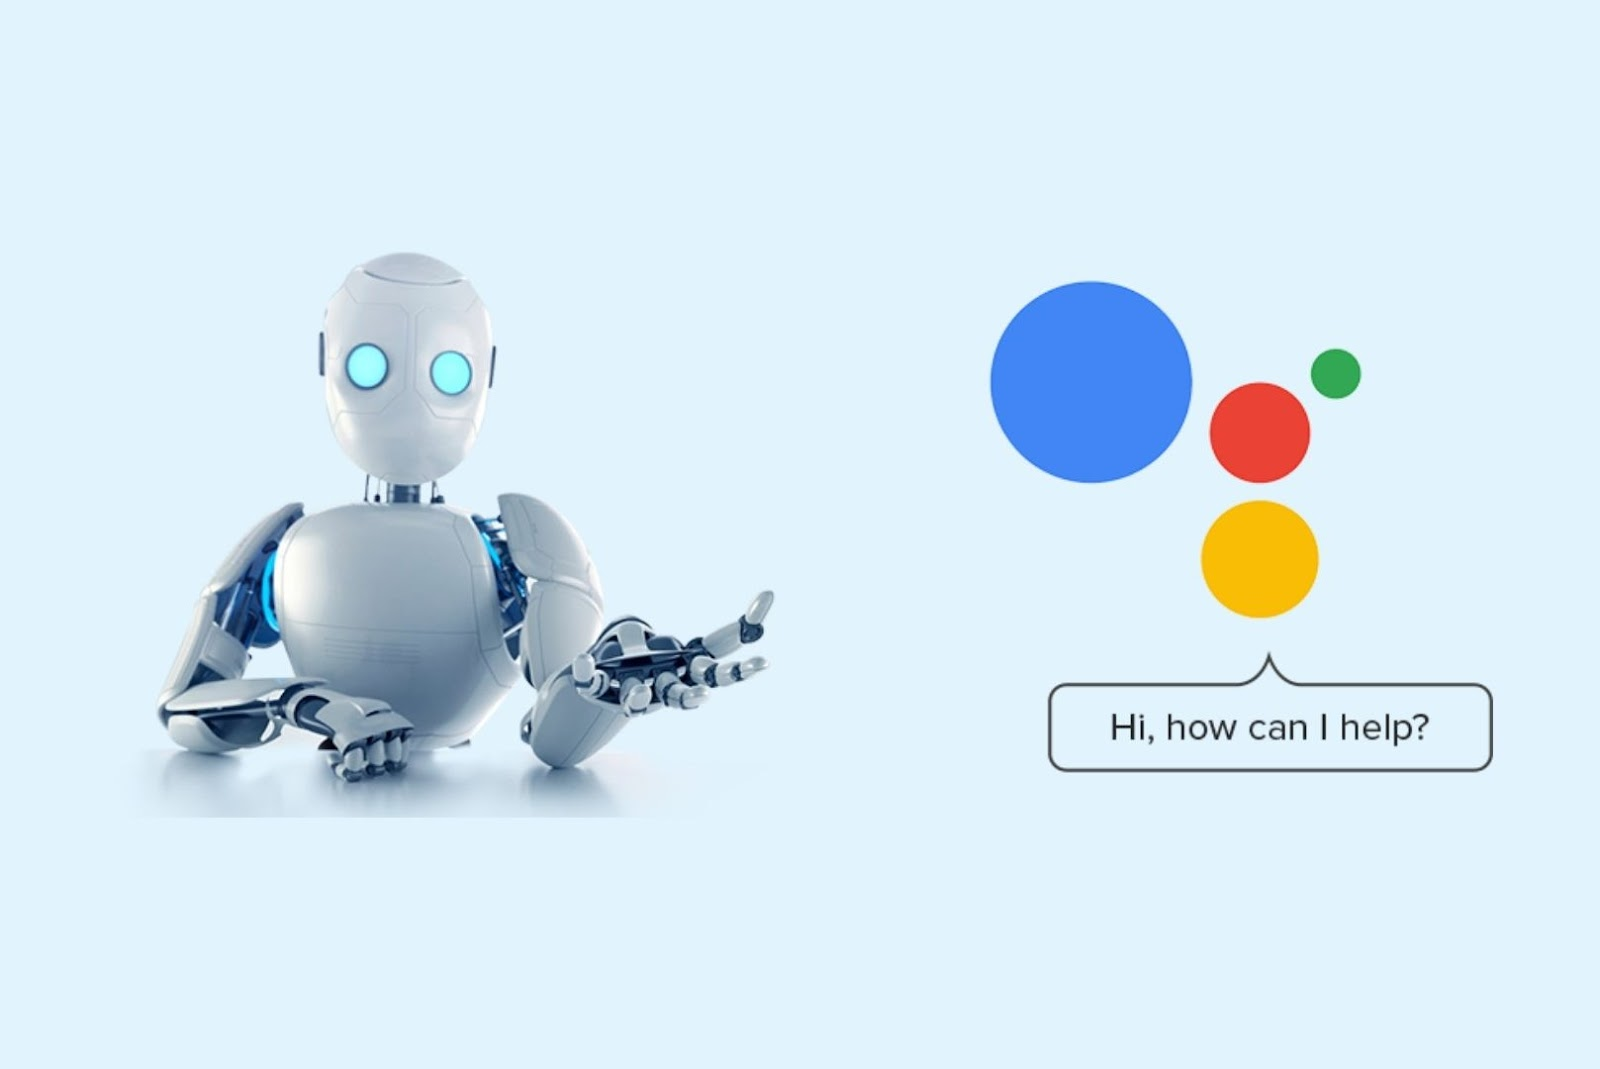 Google Assistant Chatbot